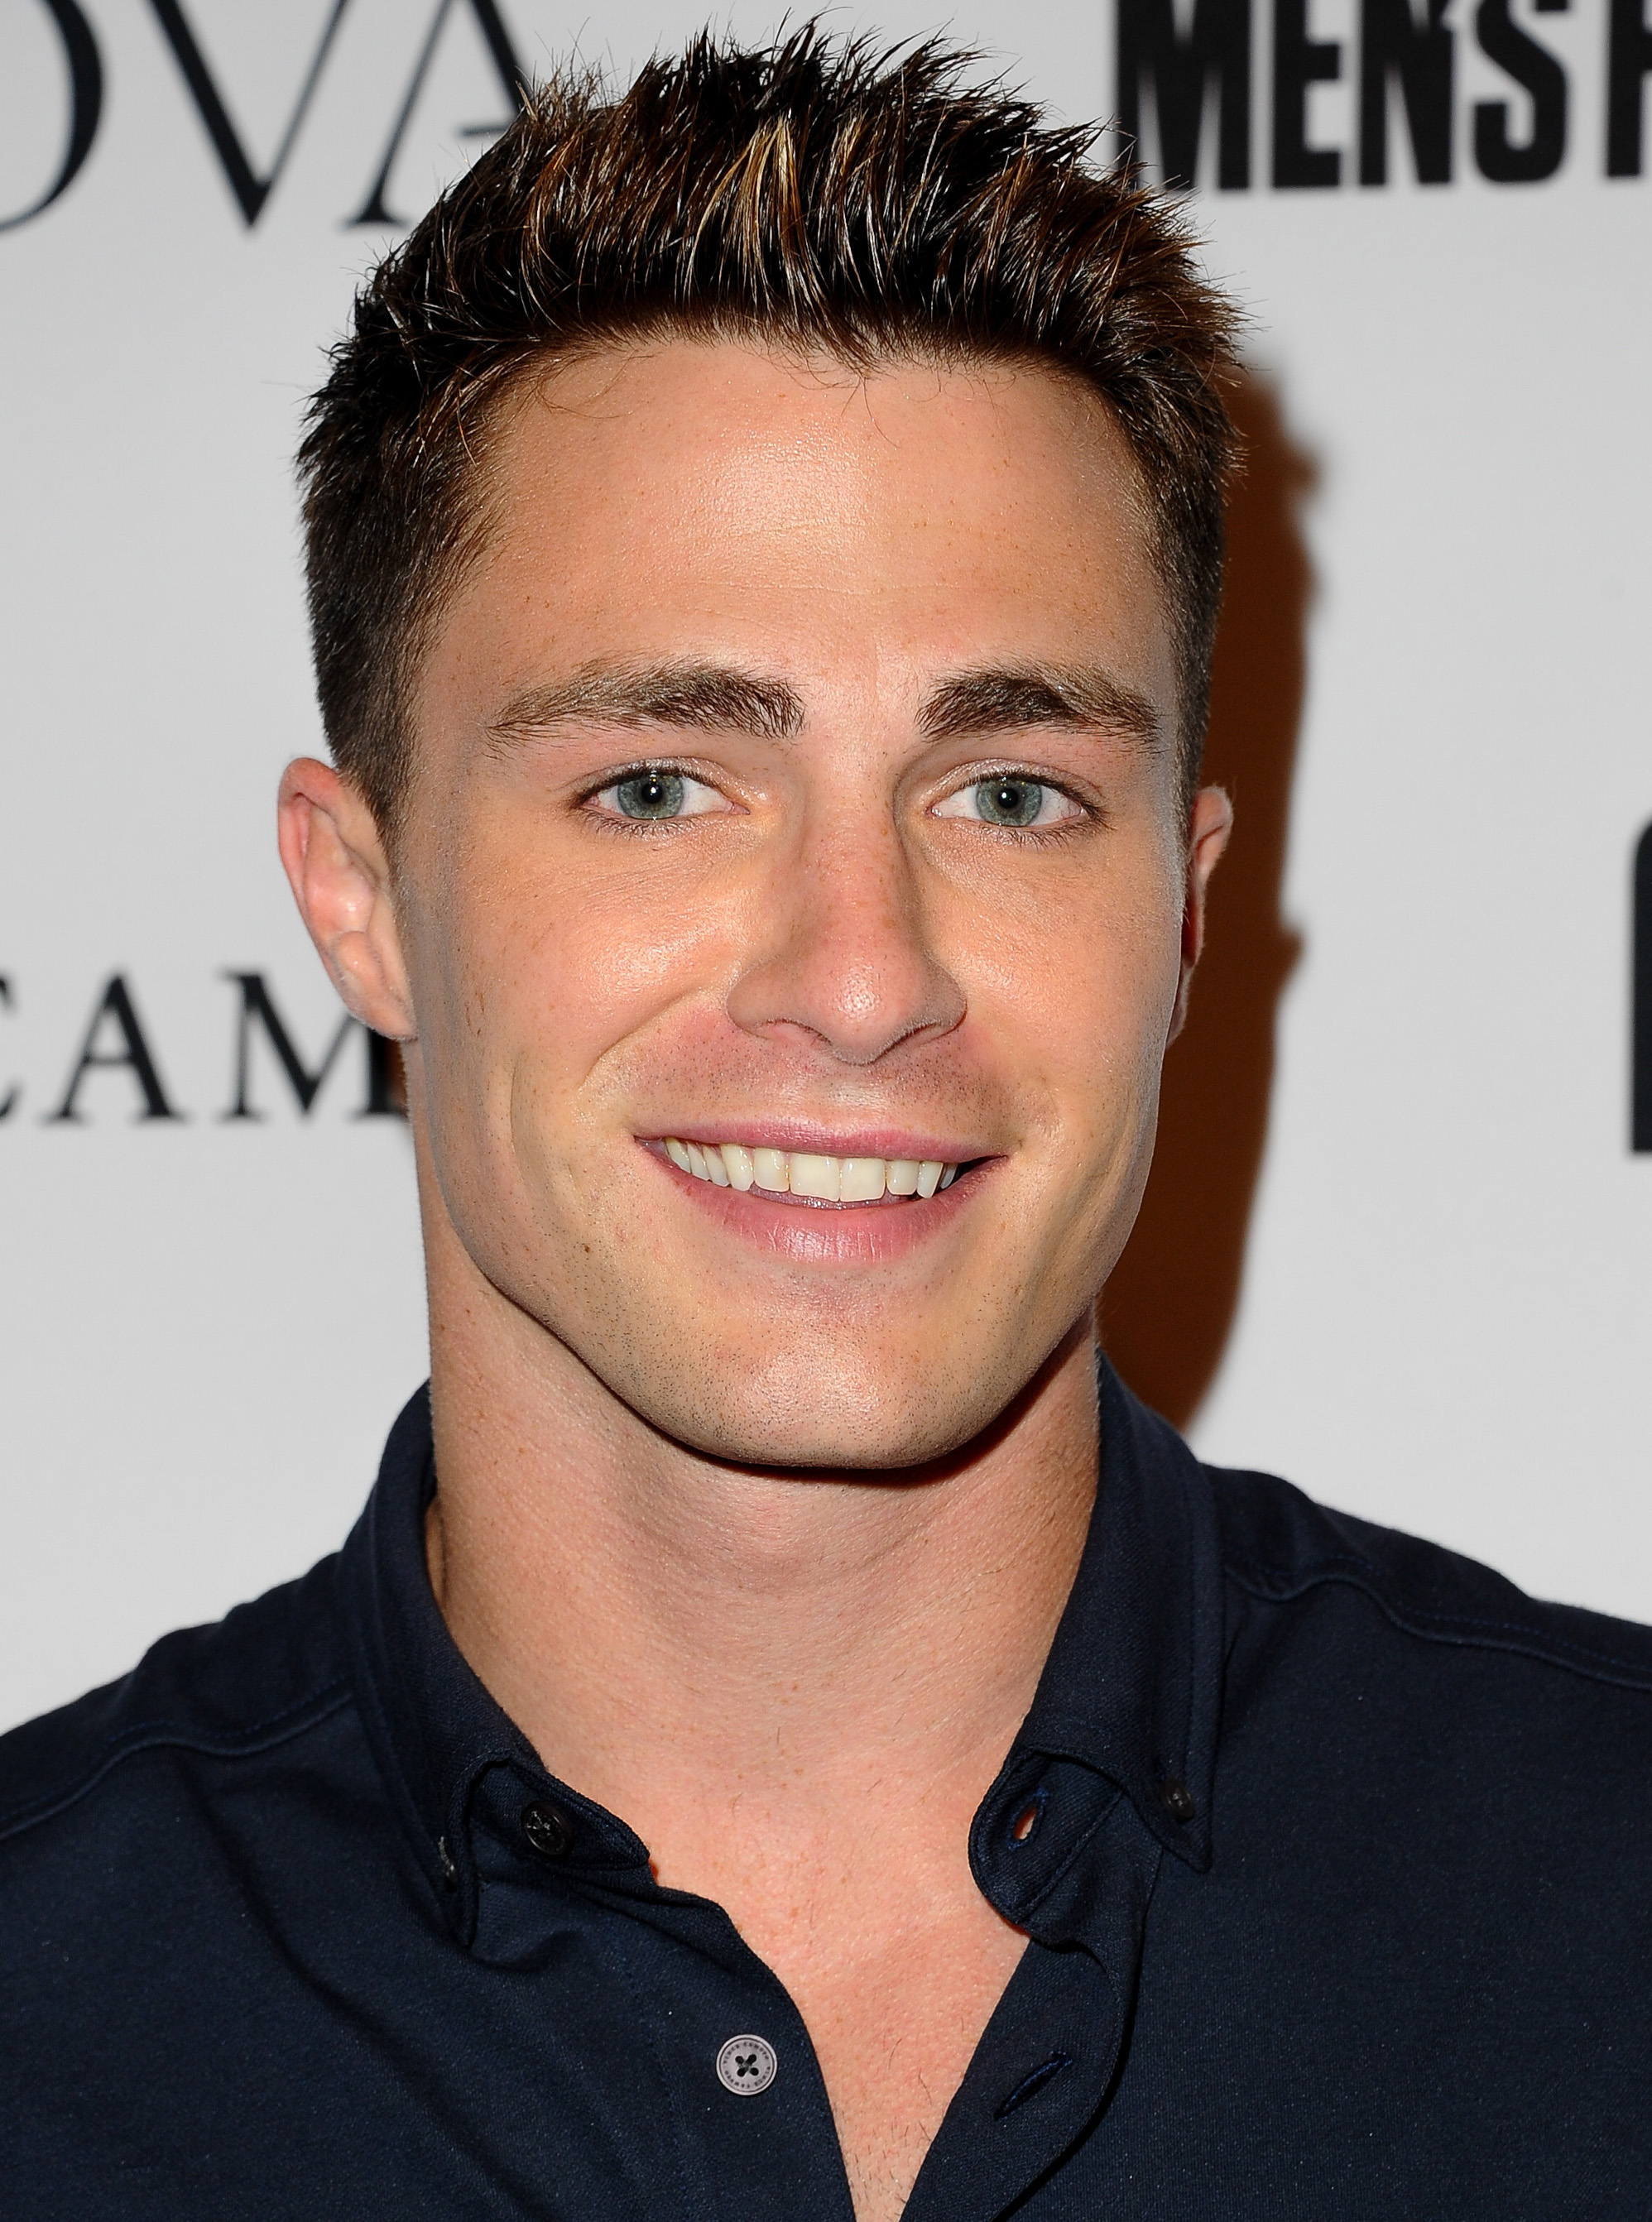 HQ Colton Haynes Wallpapers | File 1207.46Kb